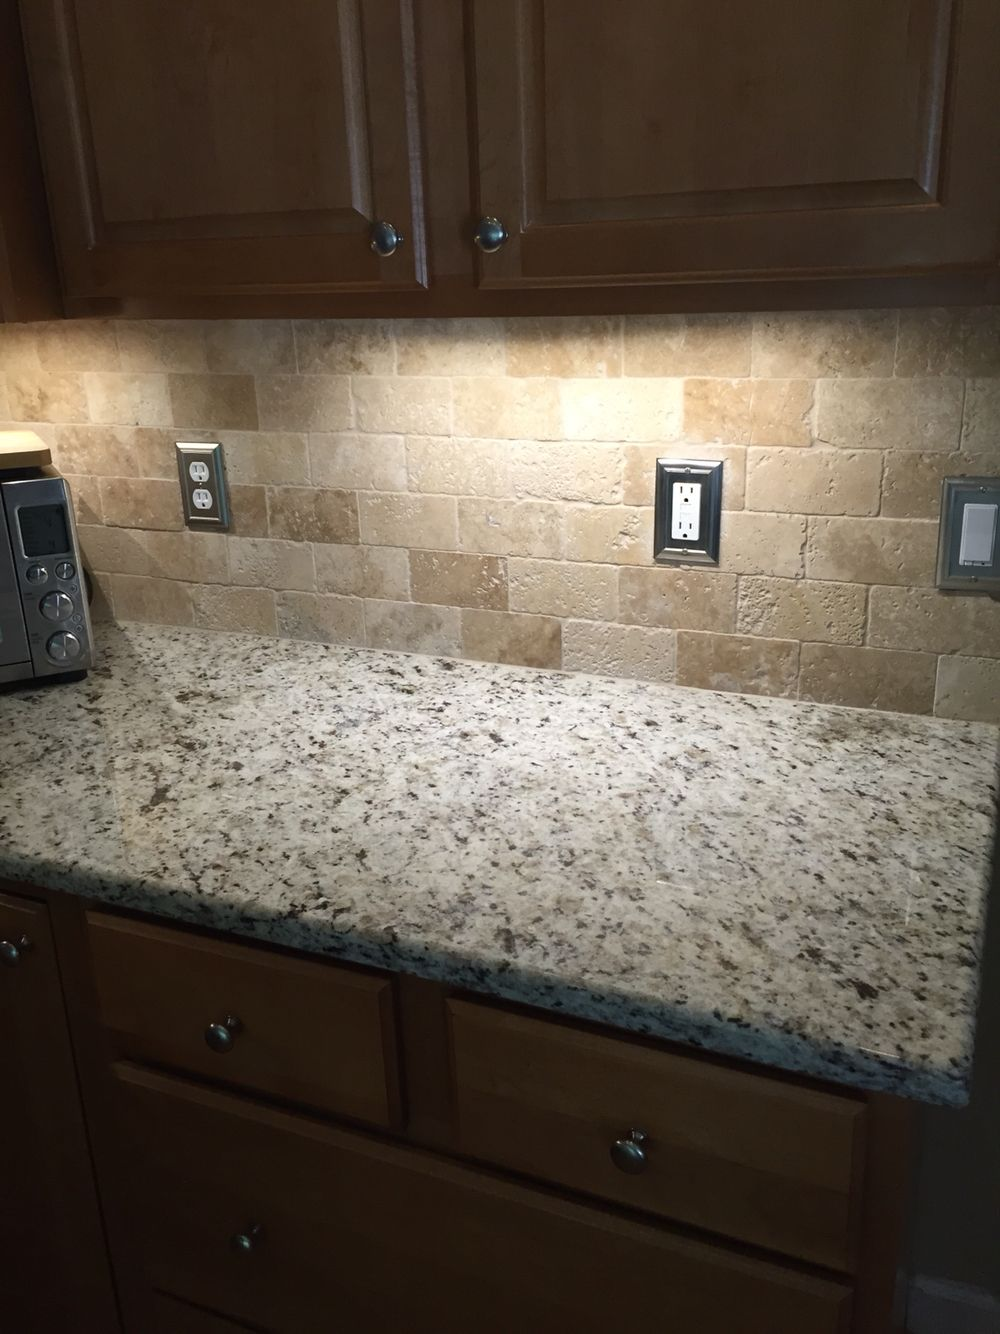 Tumbled Travertine Backsplash For The Home Pinterest Travertine Kitchens And Kitchen